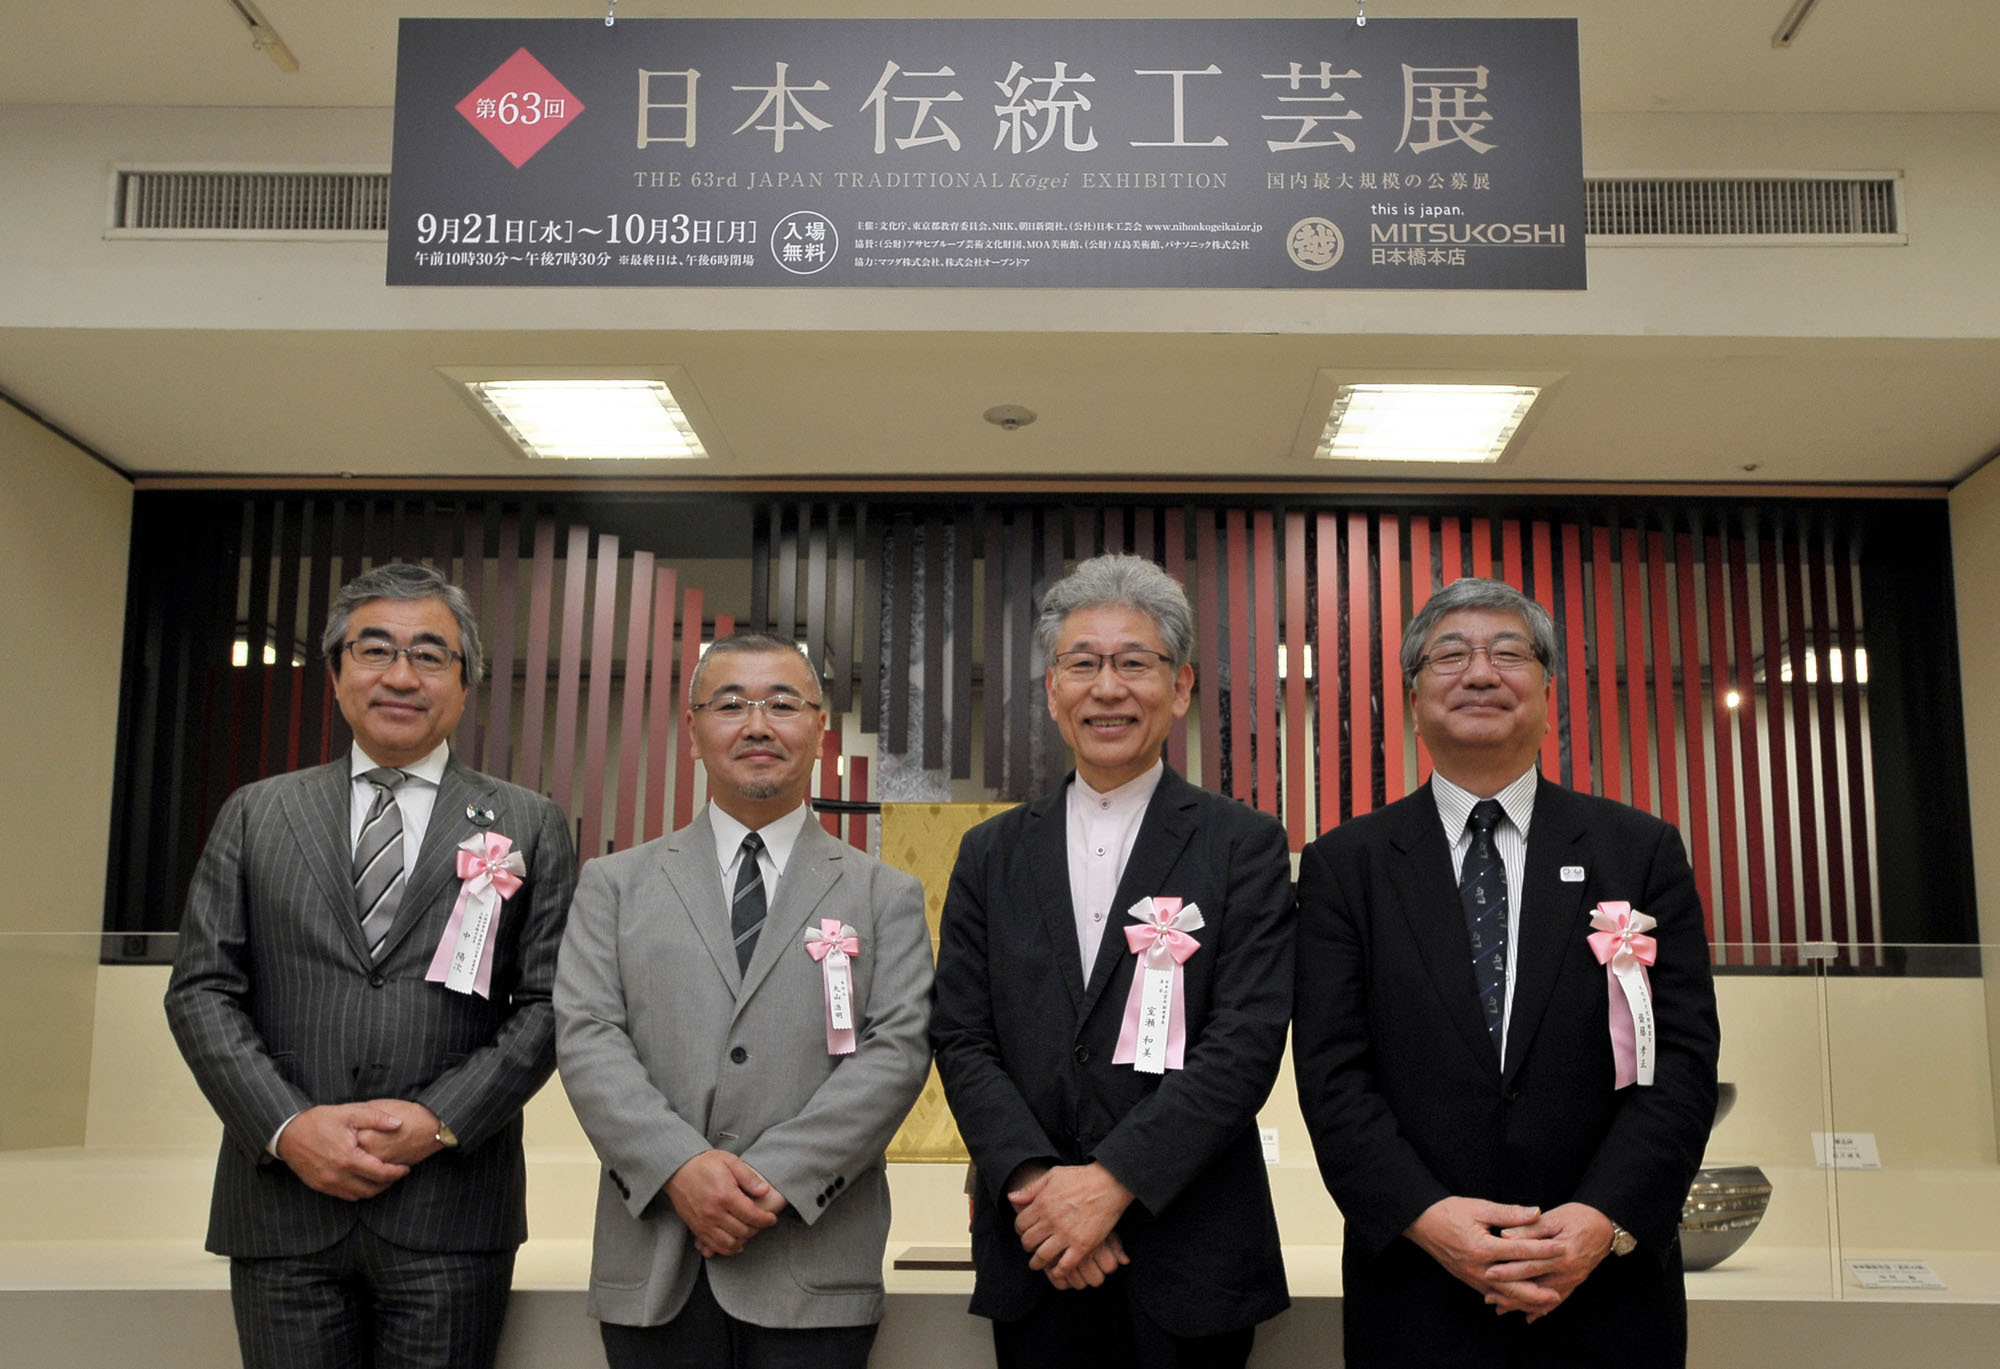 Managing Executive Officer and General Manager of Mitsukoshi's Nihombashi Store Yoji Naka; Kogei Association President's Prize winner Hiroaki Maruyama; Deputy Director of the Japan Kogei Association Kazumi Murose; and Councillor on Cultural Properties, Agency for Cultural Affairs Takamasa Saito pose at the opening ceremony of the 63rd Japan Traditional Kogei Exhibition, which runs through Oct. 3 at the Nihombashi Mitsukoshi Store, on Sept. 20. | YOSHIAKI MIURA